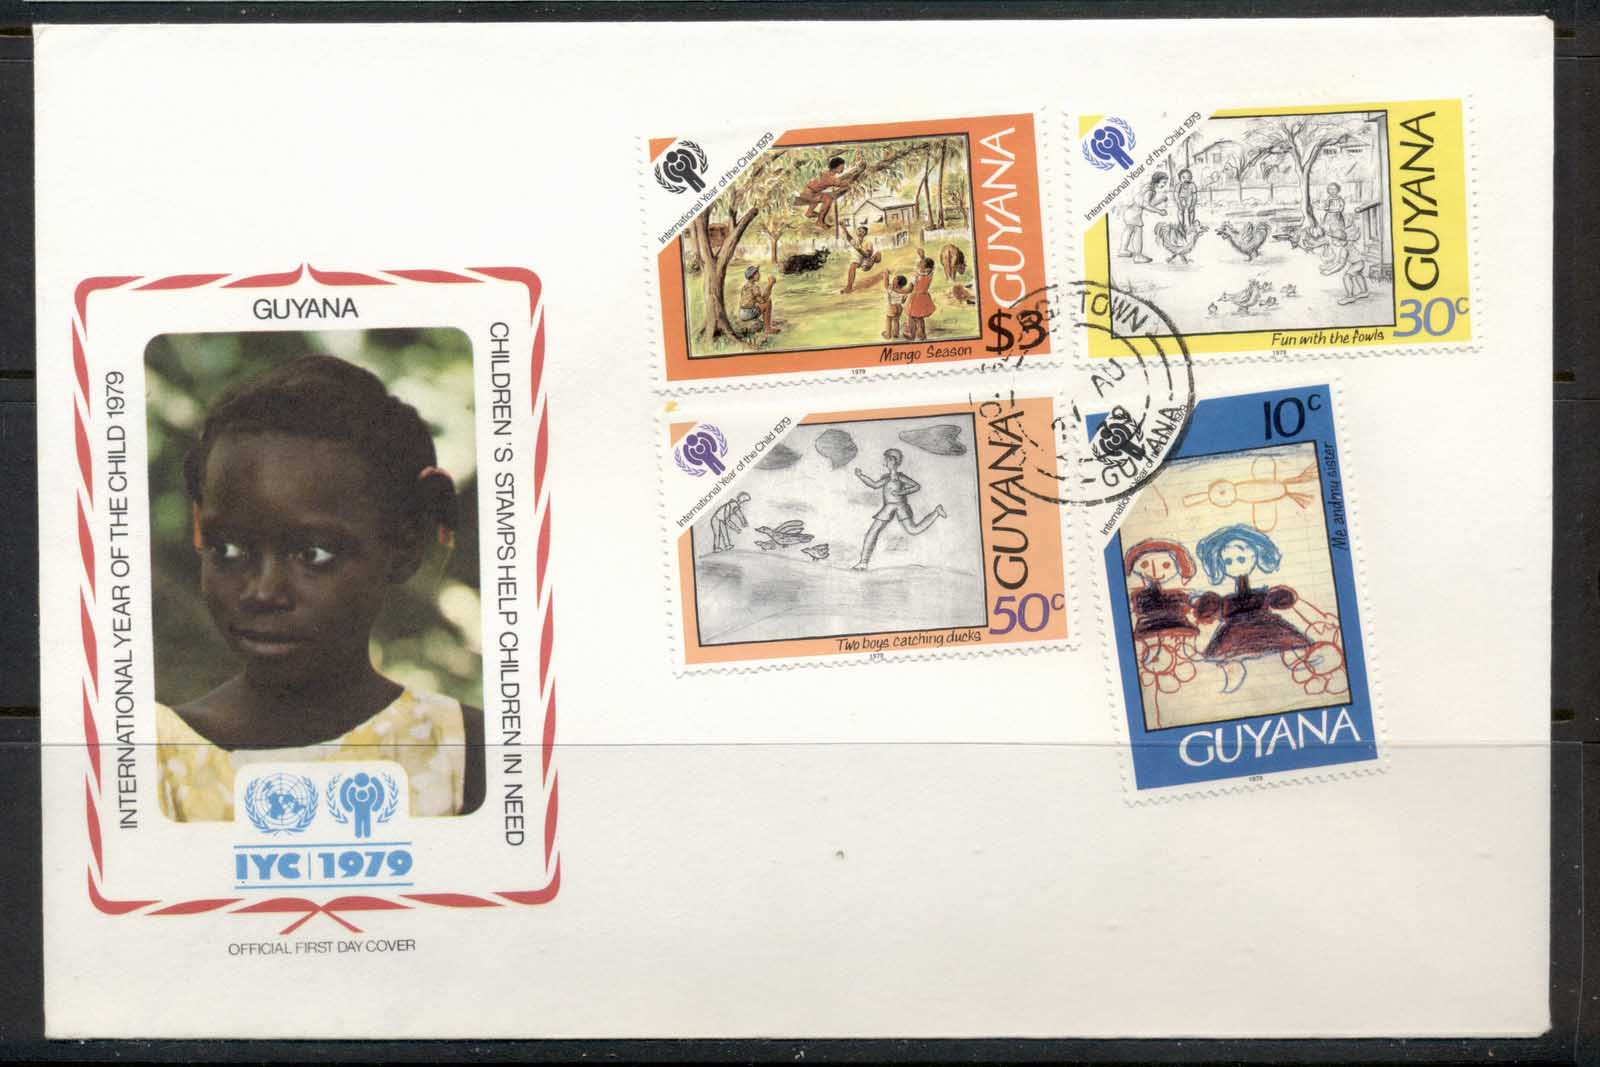 Guyana 1979 IYC International year of the Child FDC